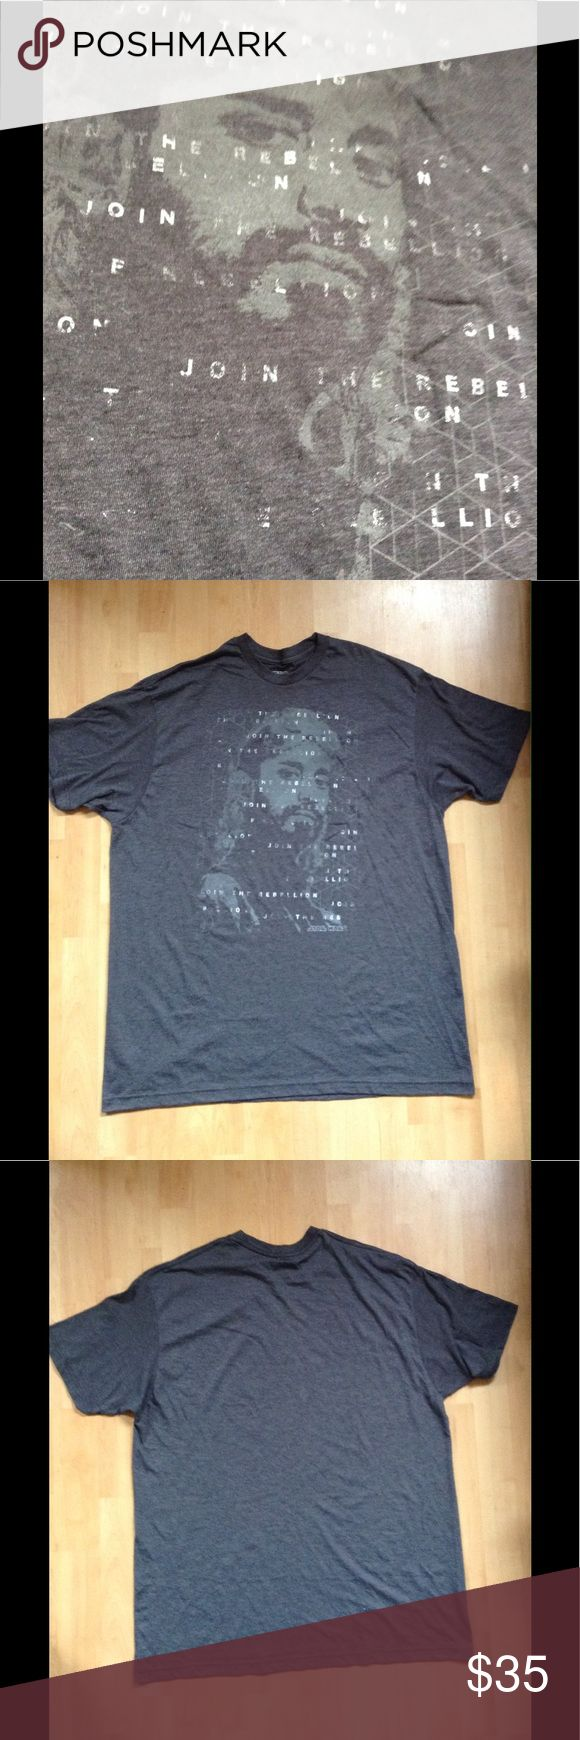 """STAR WARS JOIN THE REBELLION TEE Dark Gray XL A new & unworn tee in a cool dark charcoal gray with understated graphics. In perfect condition. Not sure if it's a boy's XL or if it's men's sizing, but the chest (unstretched) measures around 50-52"""". Athletic fit. Save an additional 10% automatically by bundling w/2 or more items from my closet. Plus, I ship fast! Star Wars Shirts Tees - Short Sleeve"""